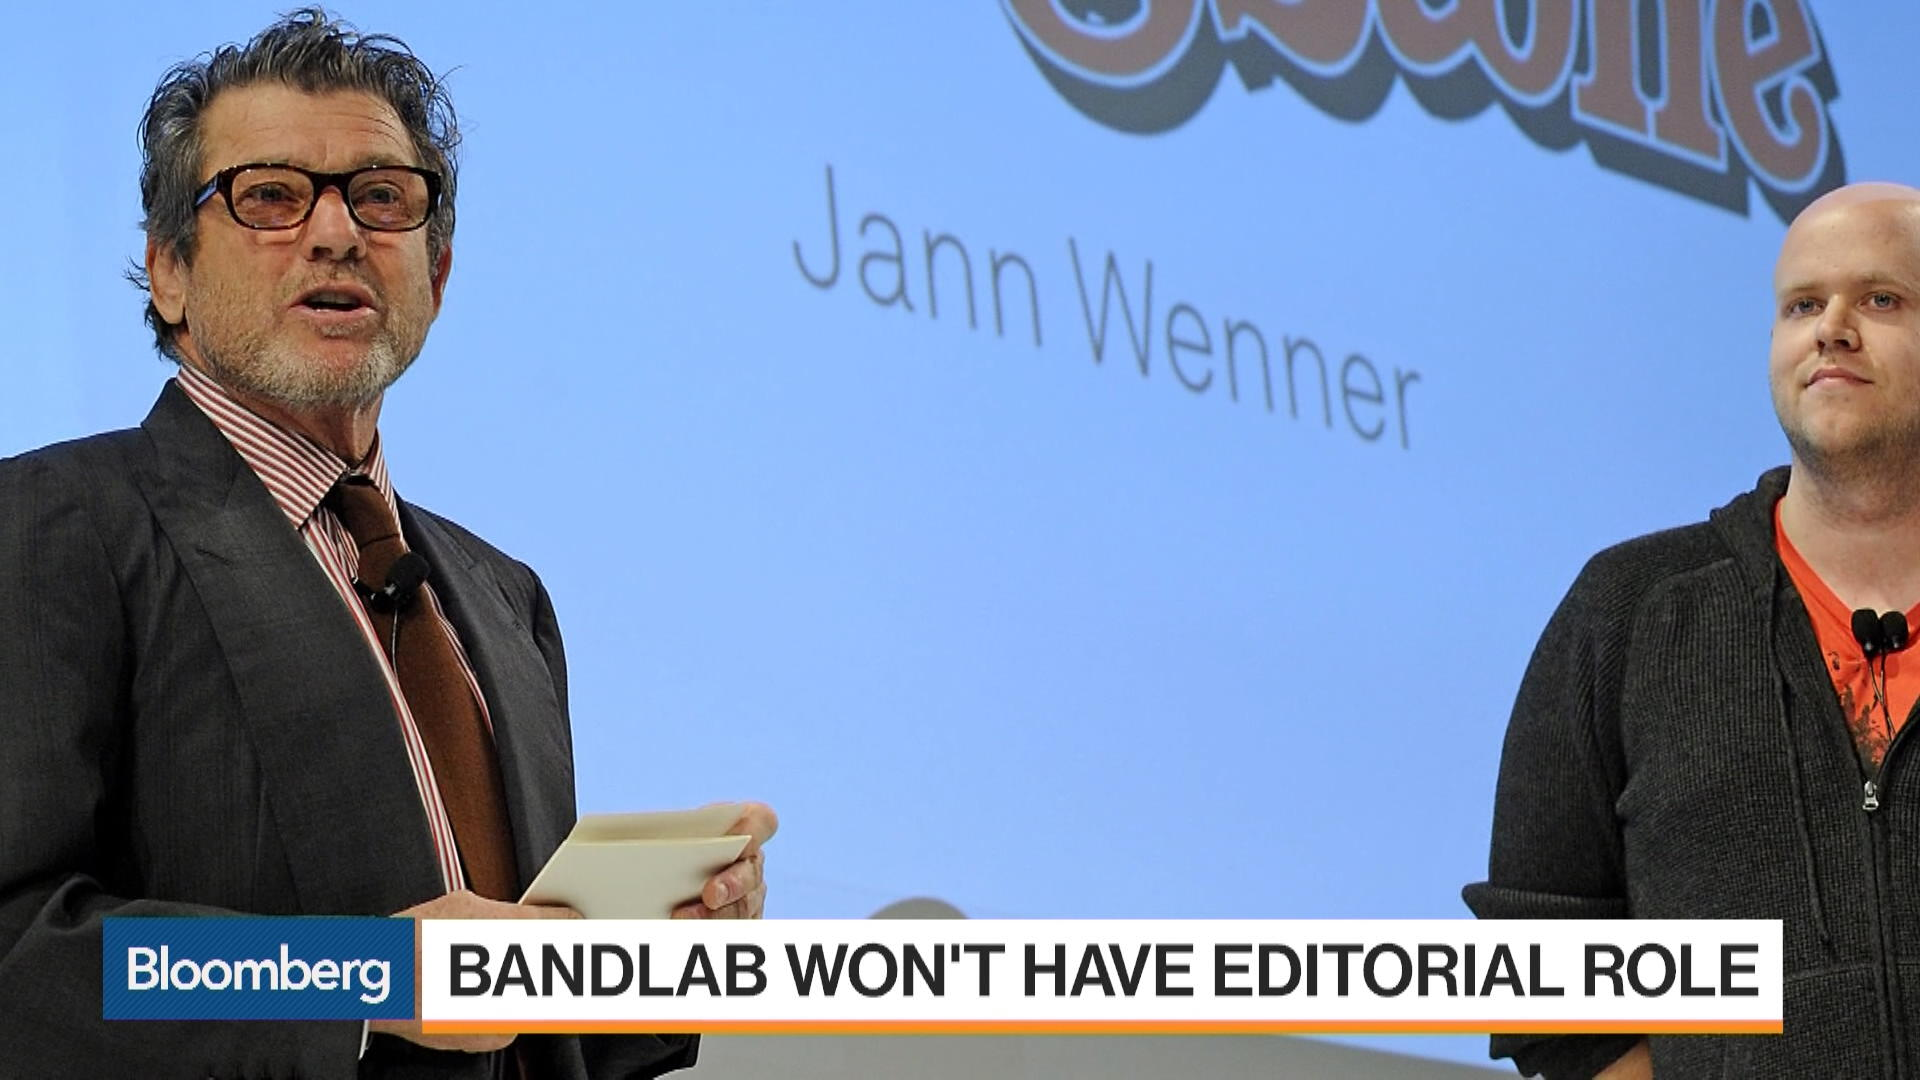 Wenner to Sell 49% of Rolling Stone to Singapore's BandLab